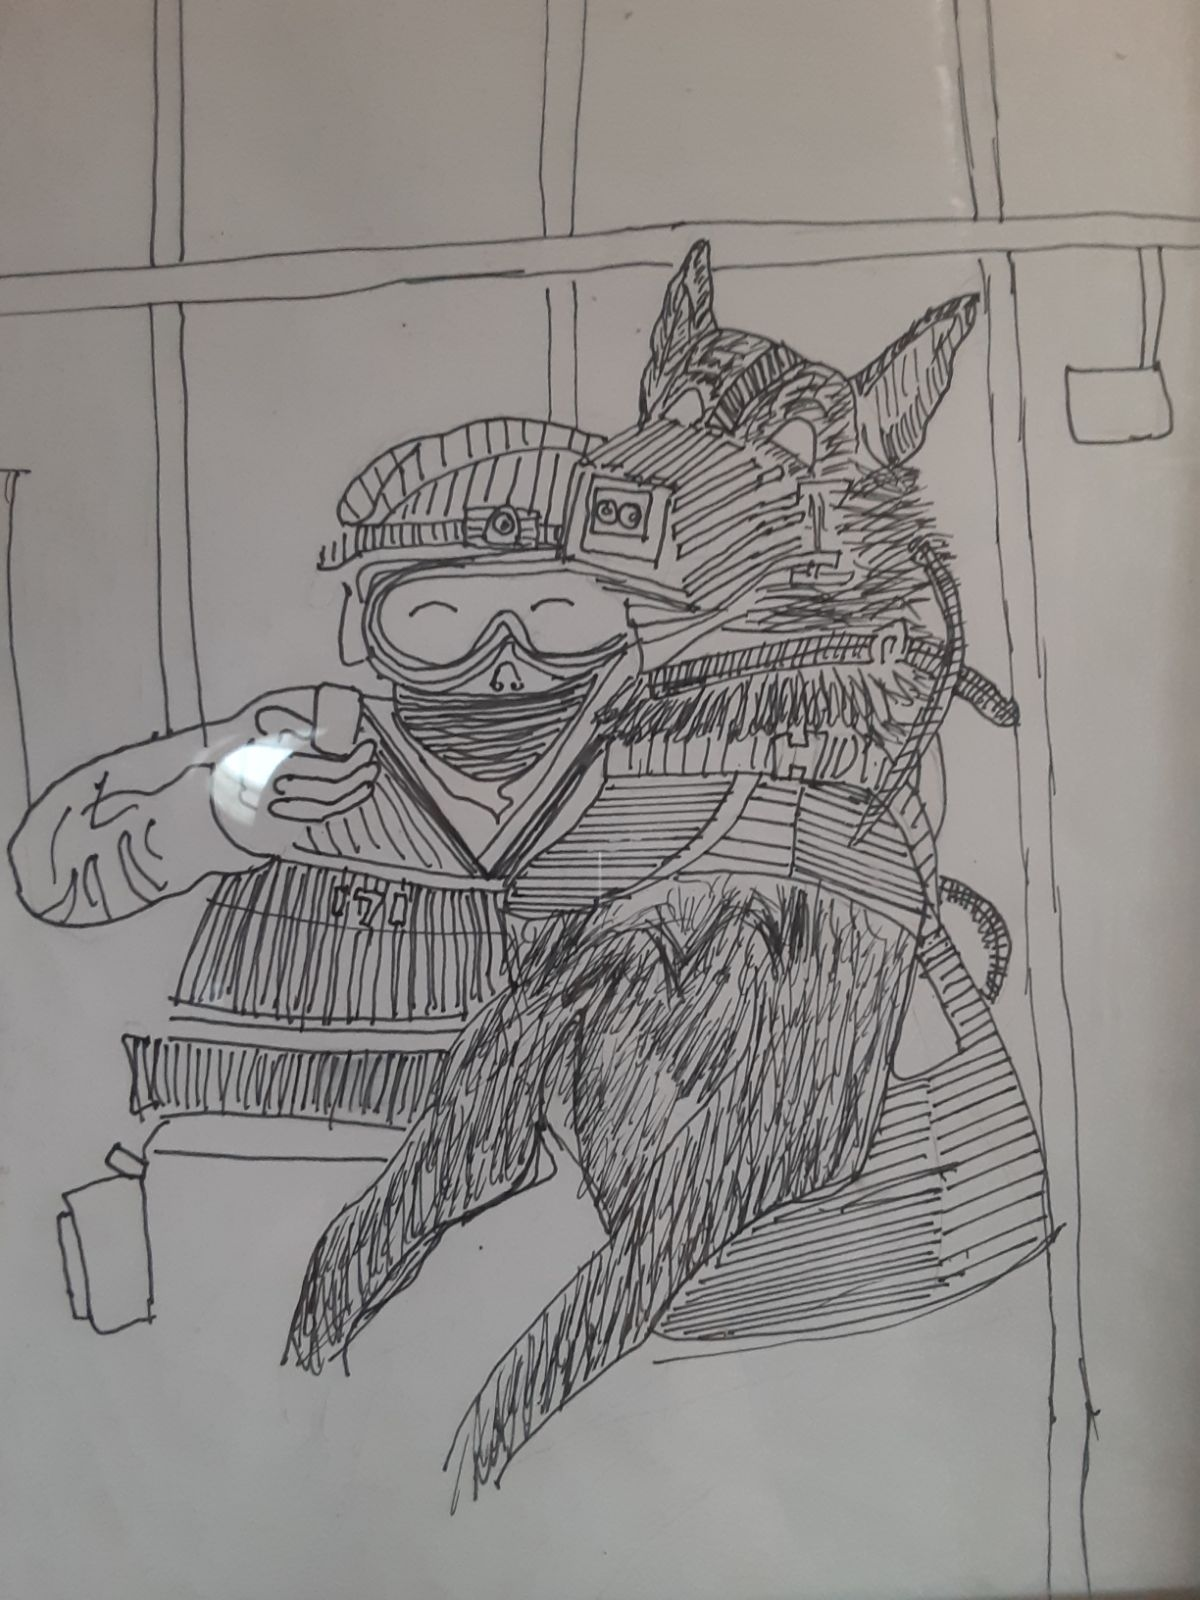 Bomb Squad Man and k9 Scetch 11x9 Frame